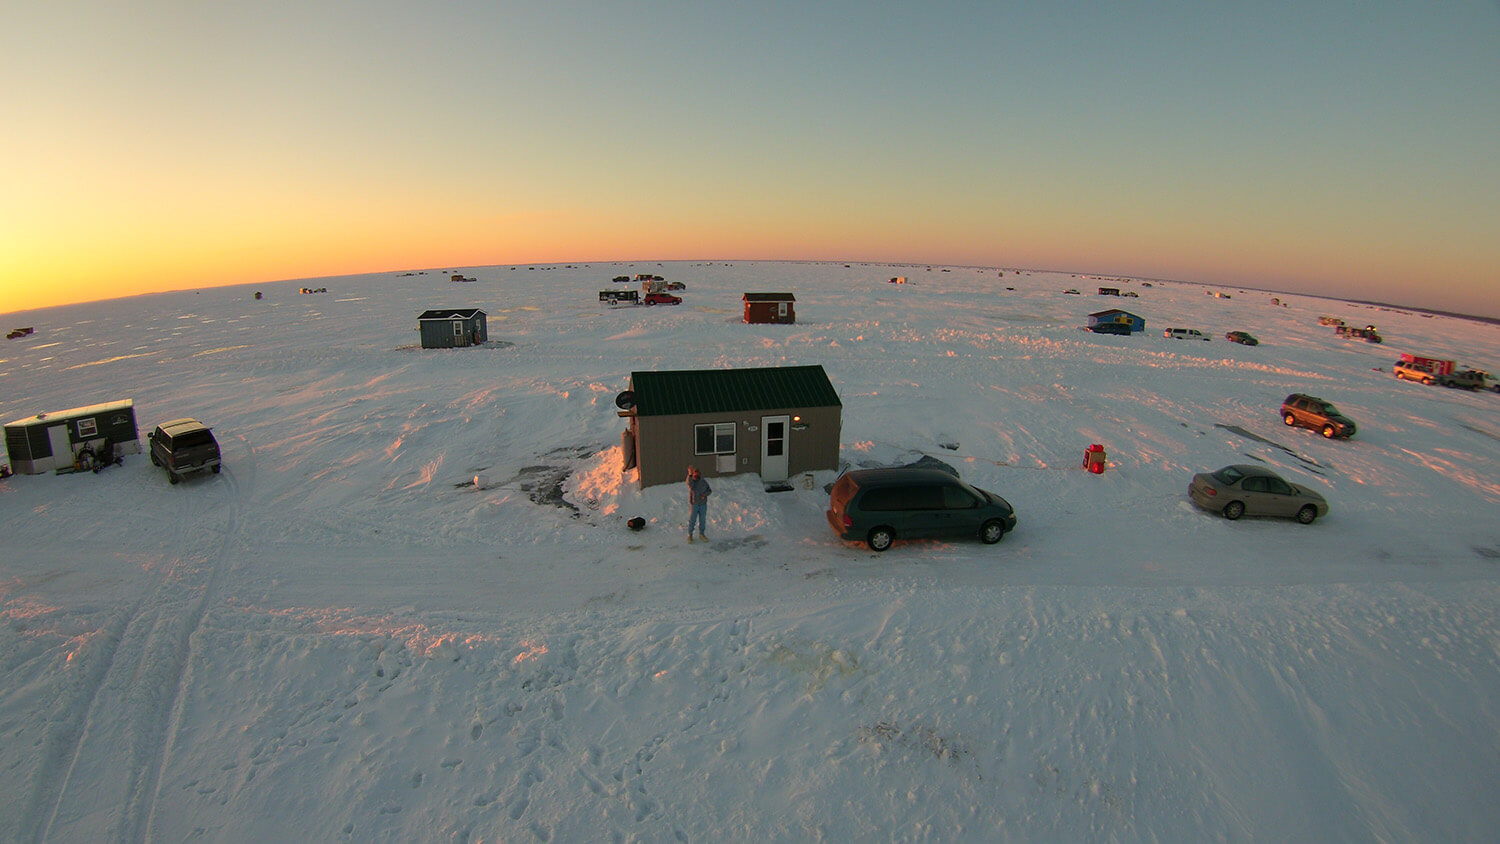 Ice Fishing Hut on Mille Lacs Lake